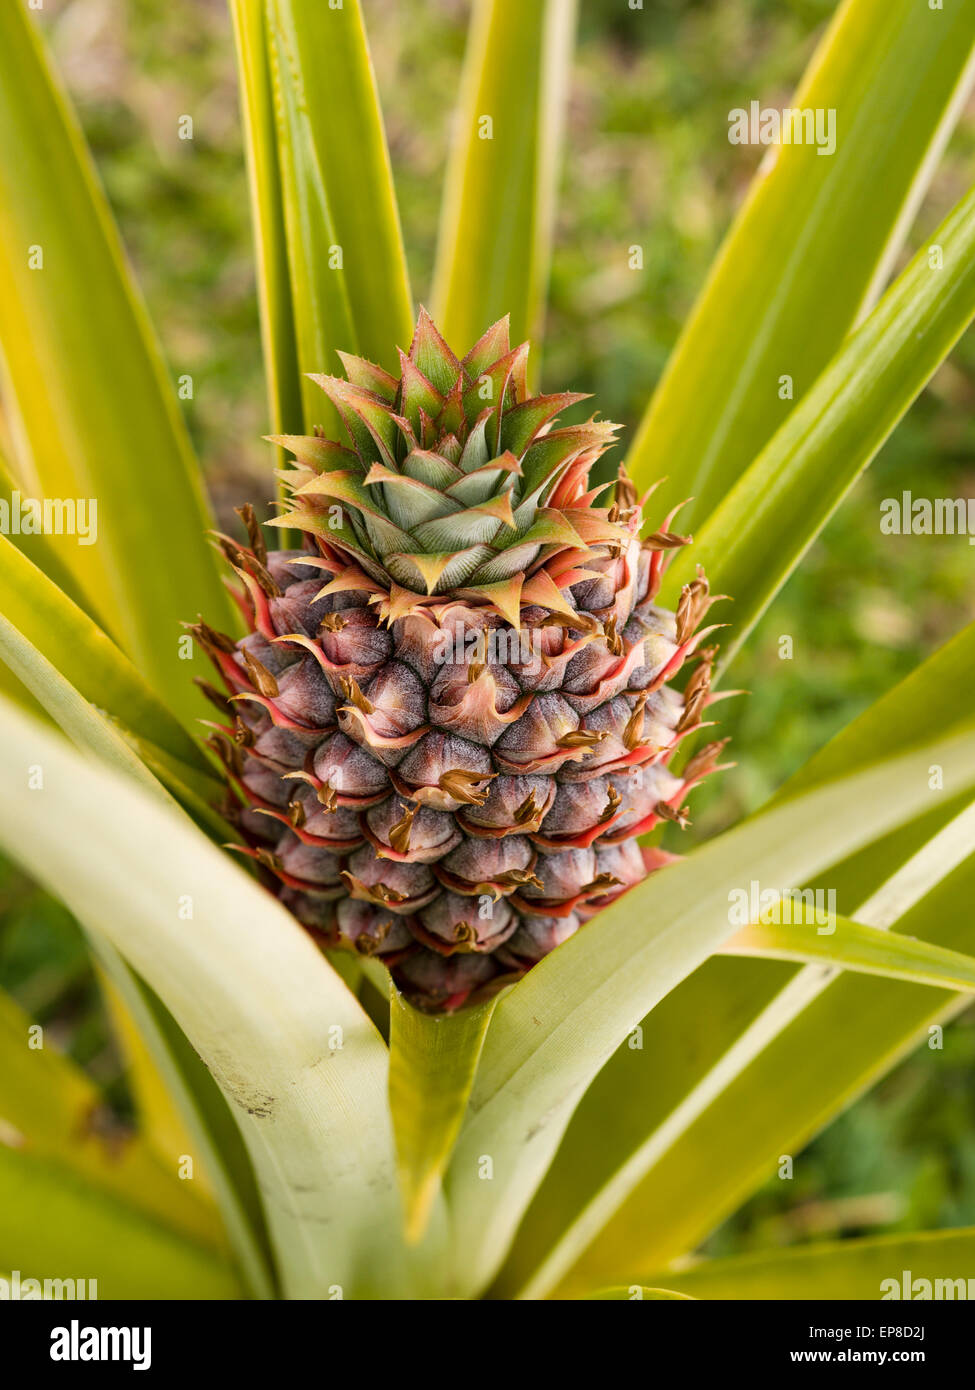 Baby Pineapple in the bush. A small pineapple fruit grows and matures in the fronds of the main plant. - Stock Image